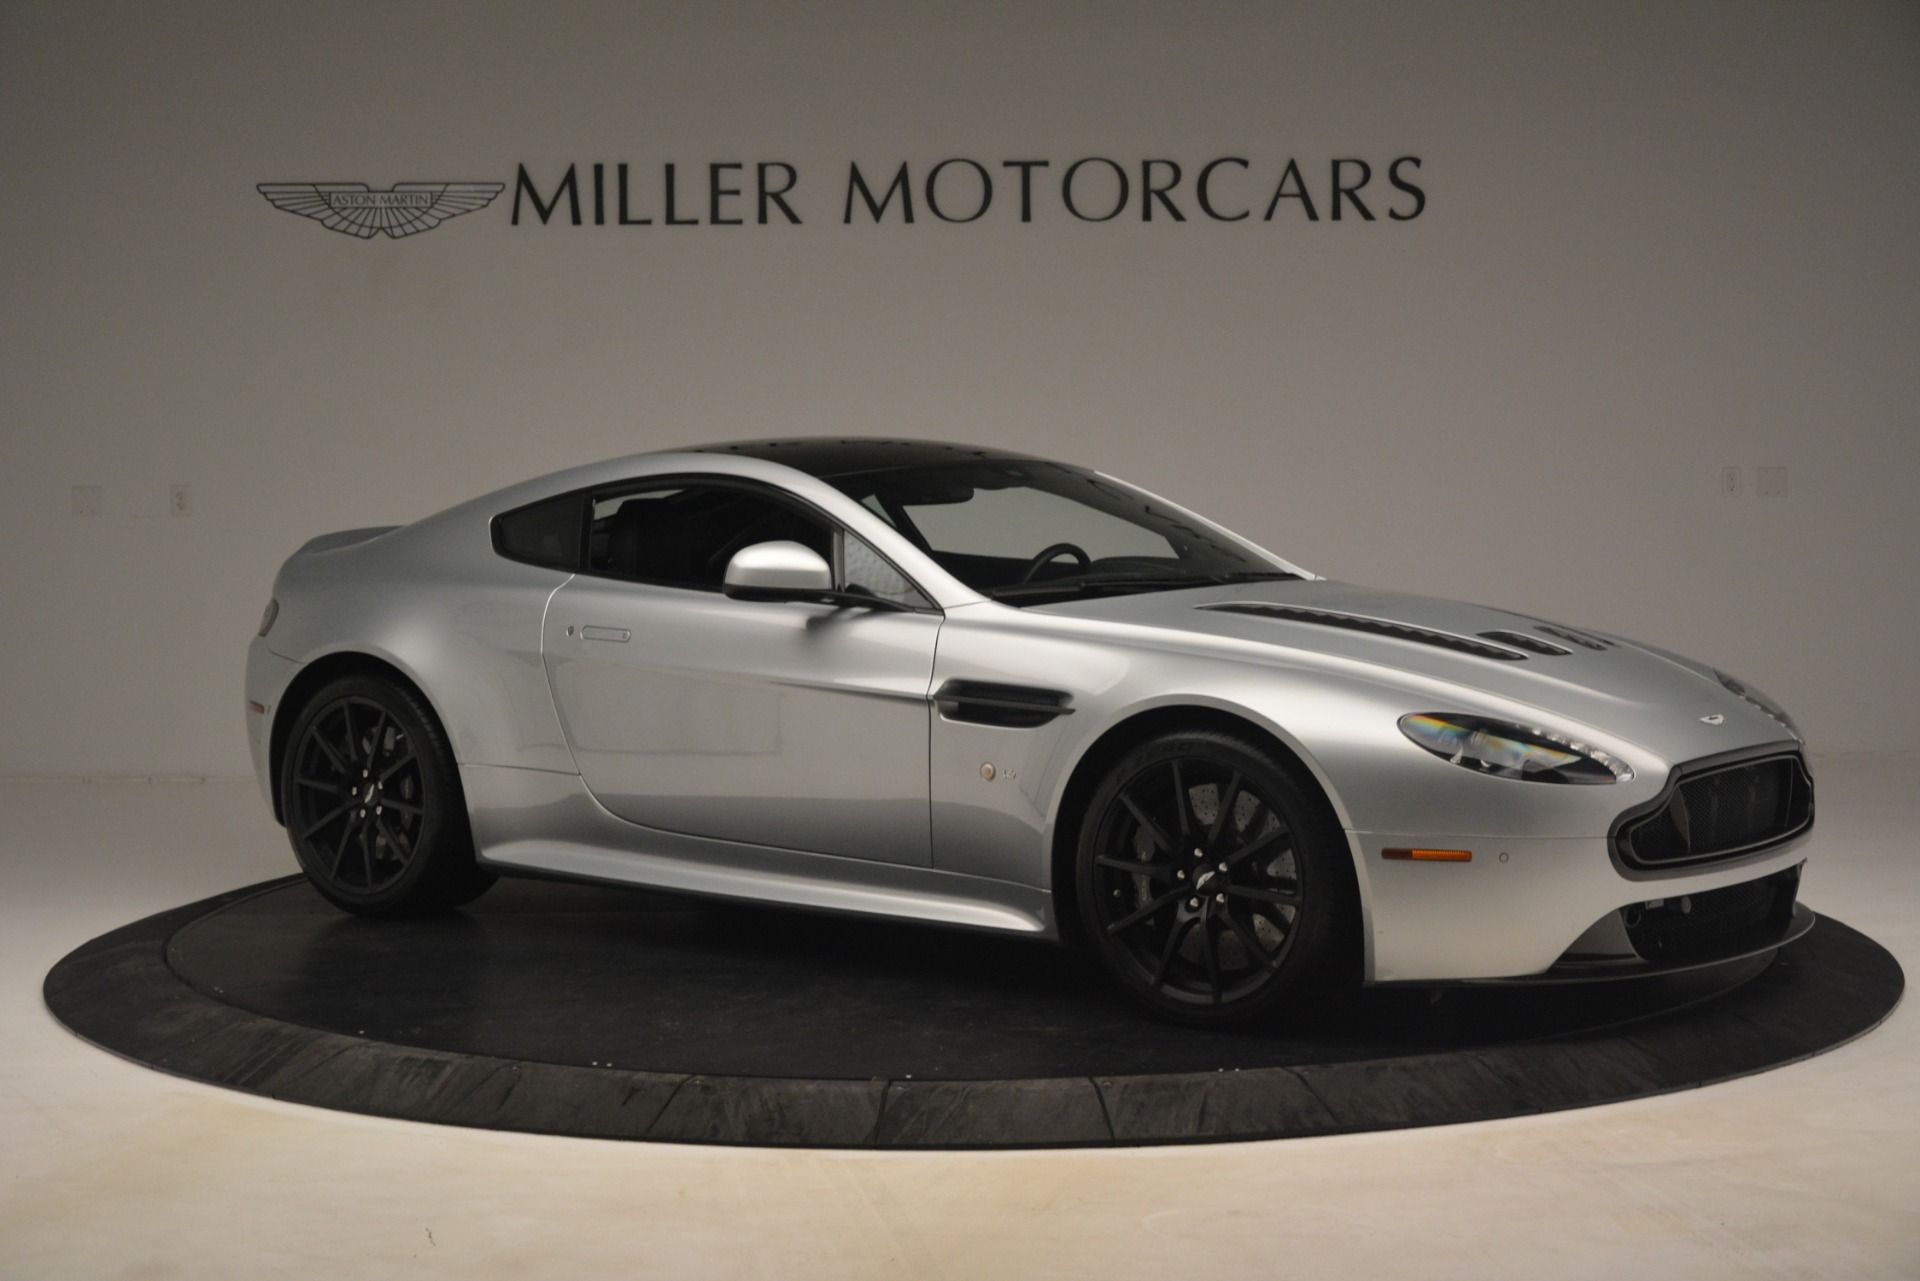 Used 2015 Aston Martin V12 Vantage S Coupe For Sale In Greenwich, CT 3206_p10